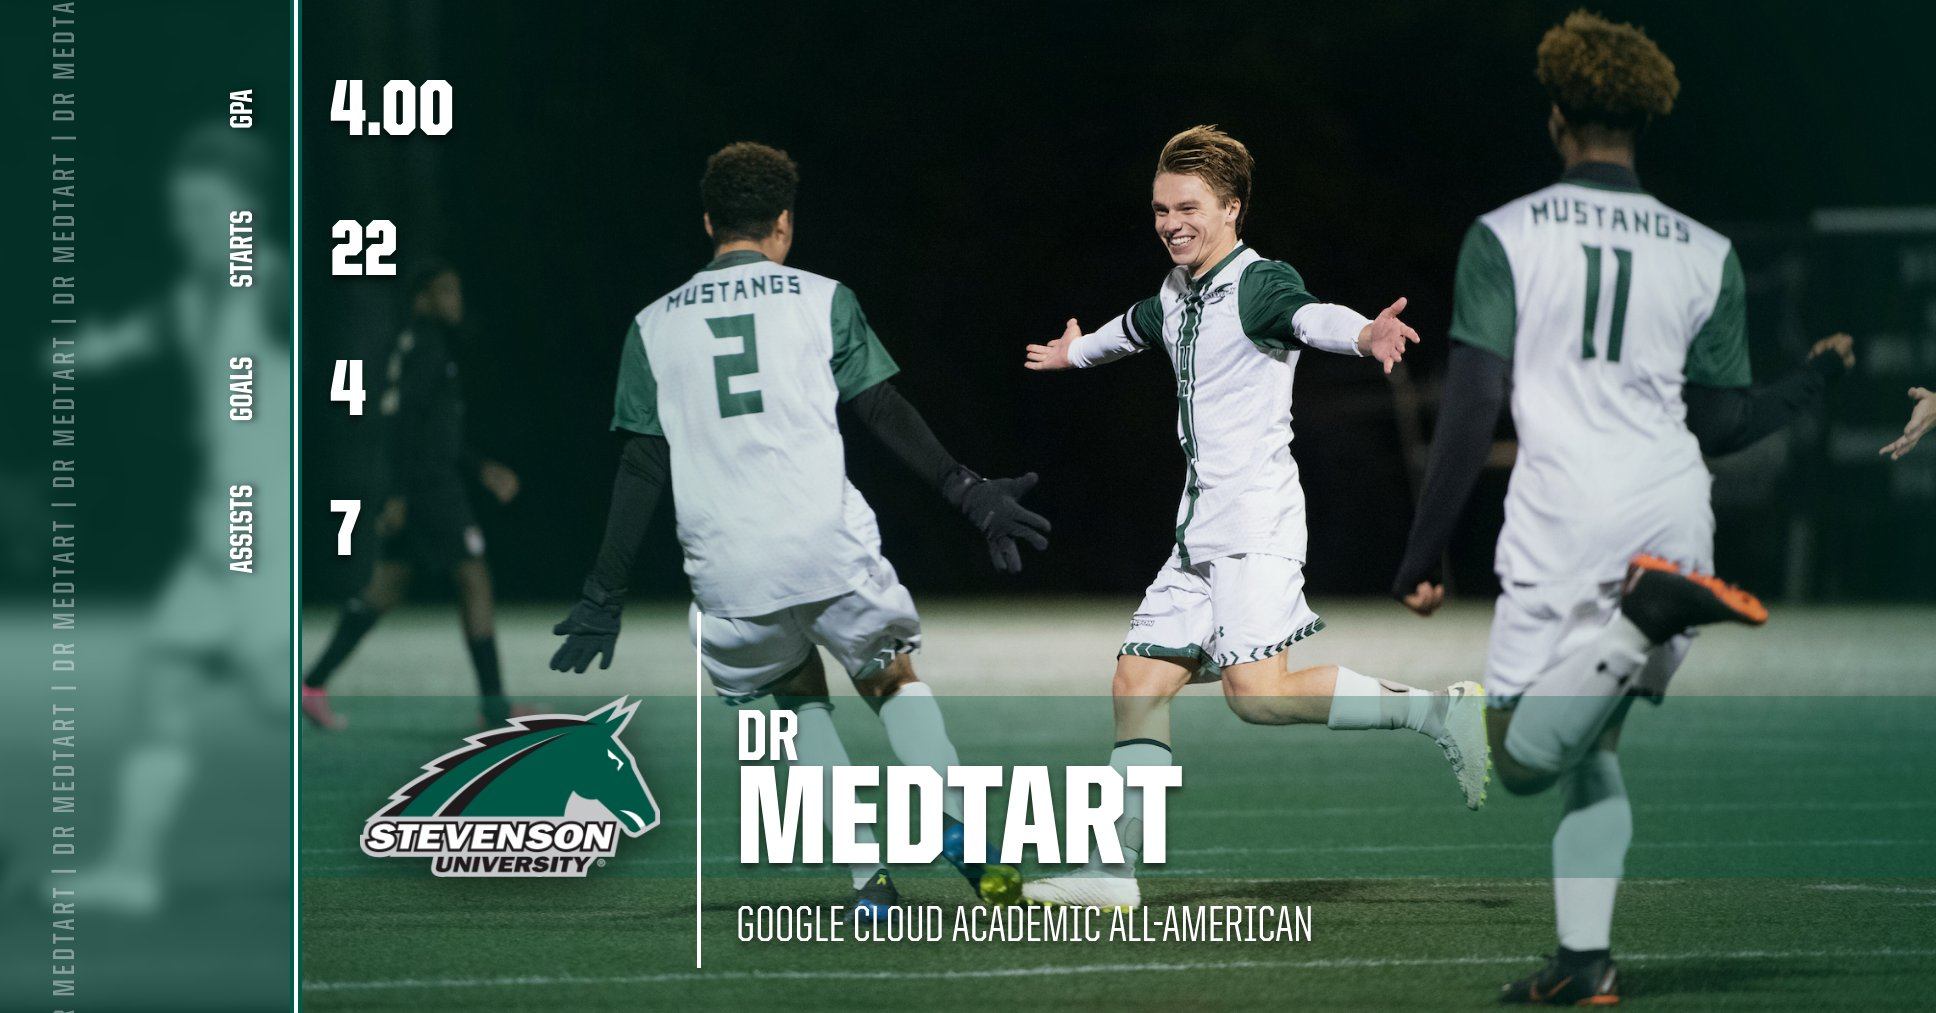 DR Medtart Named to Google Cloud Academic All-American Second Team